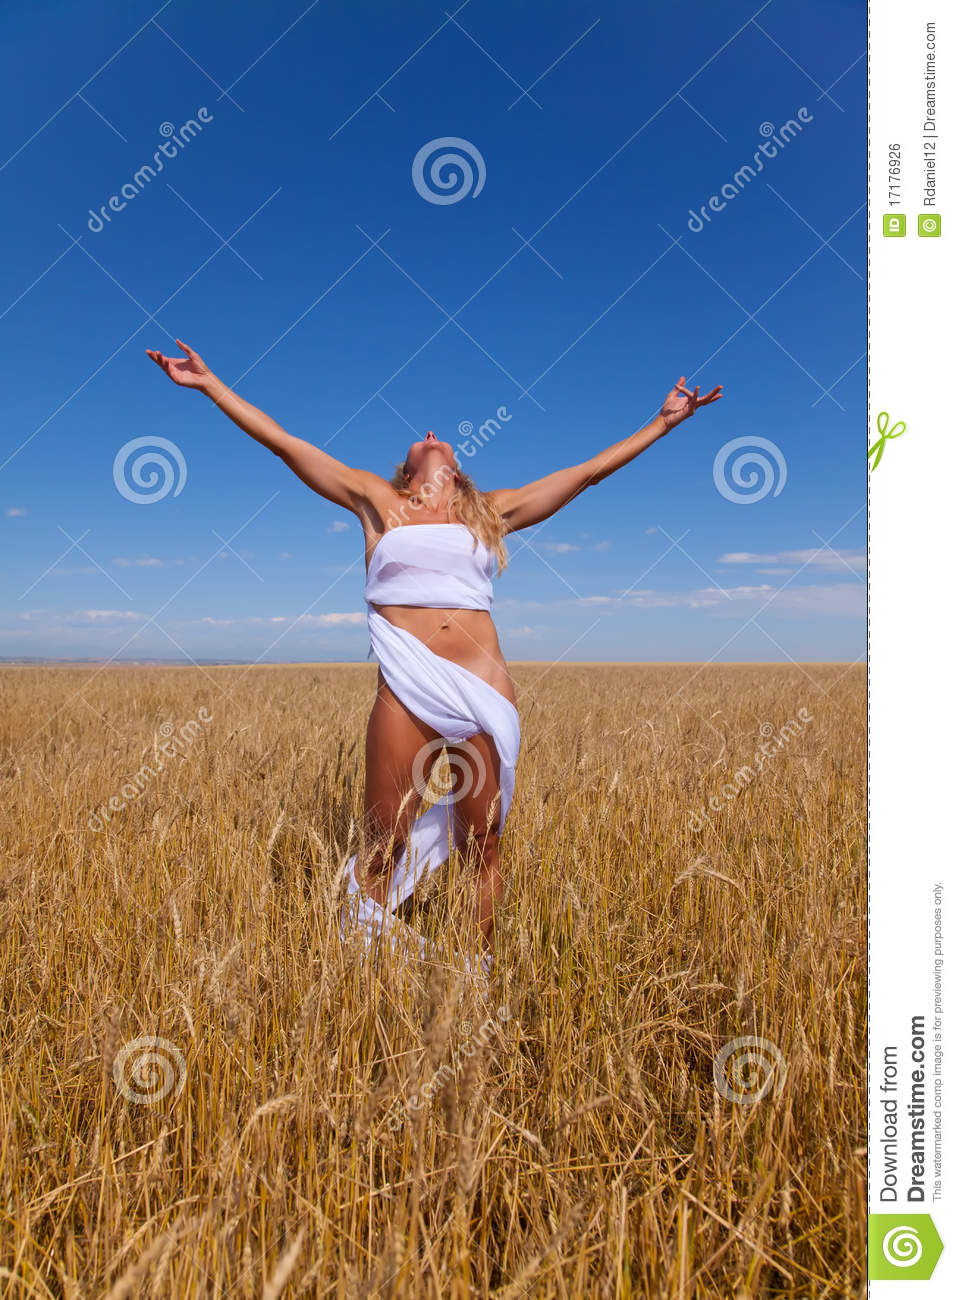 Woman In Wheat Field Royalty Free Stock Image - Image ...